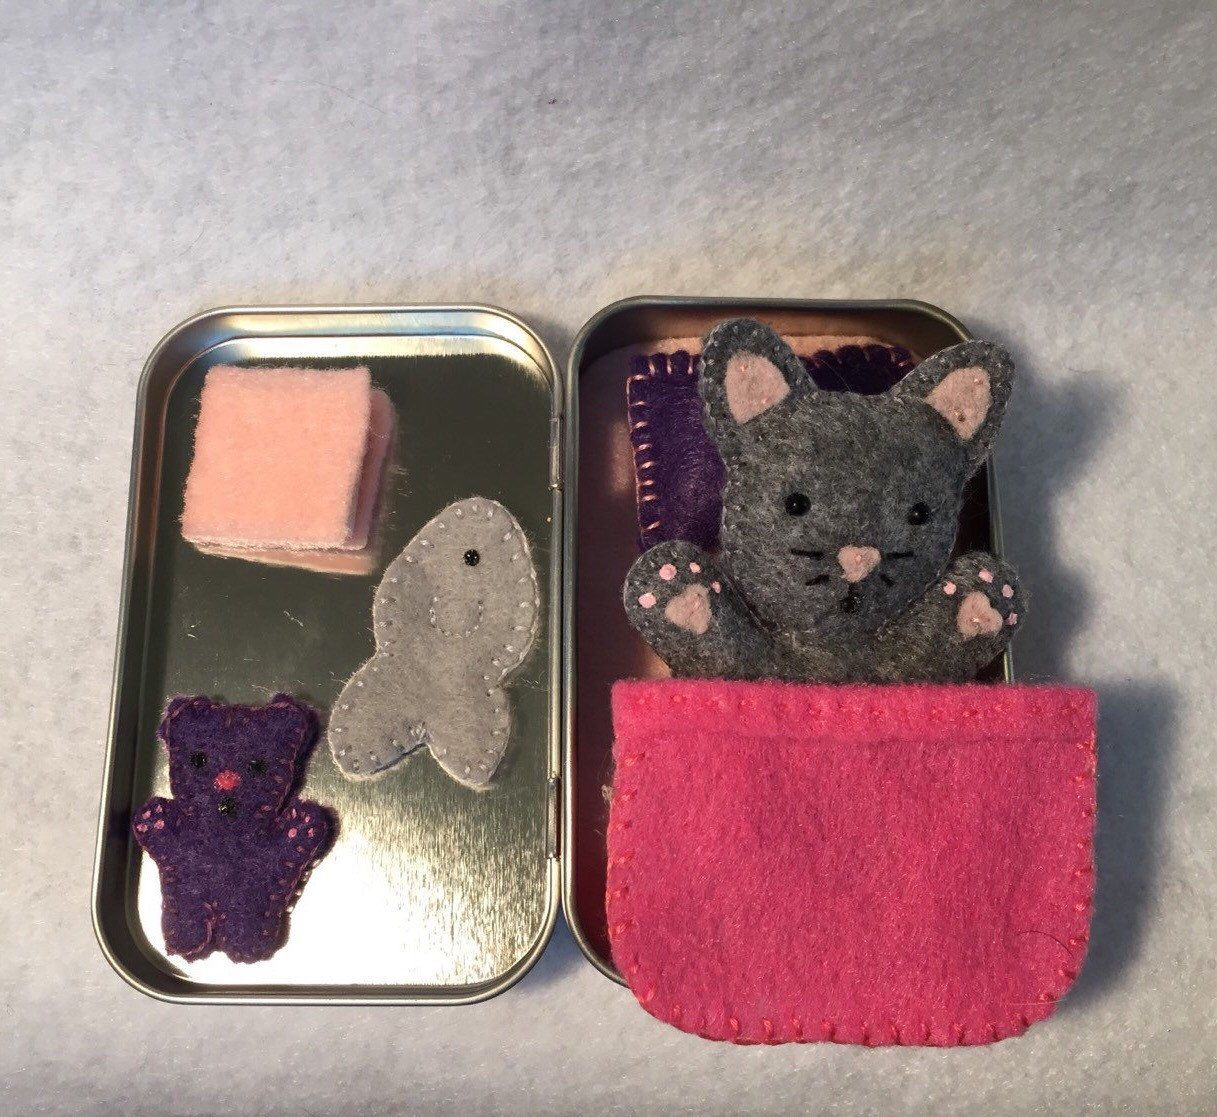 Lil' Maties- Grey cat -pink bed set in tin by MatiesMeadow on Etsy https://www.etsy.com/listing/213959566/lil-maties-grey-cat-pink-bed-set-in-tin